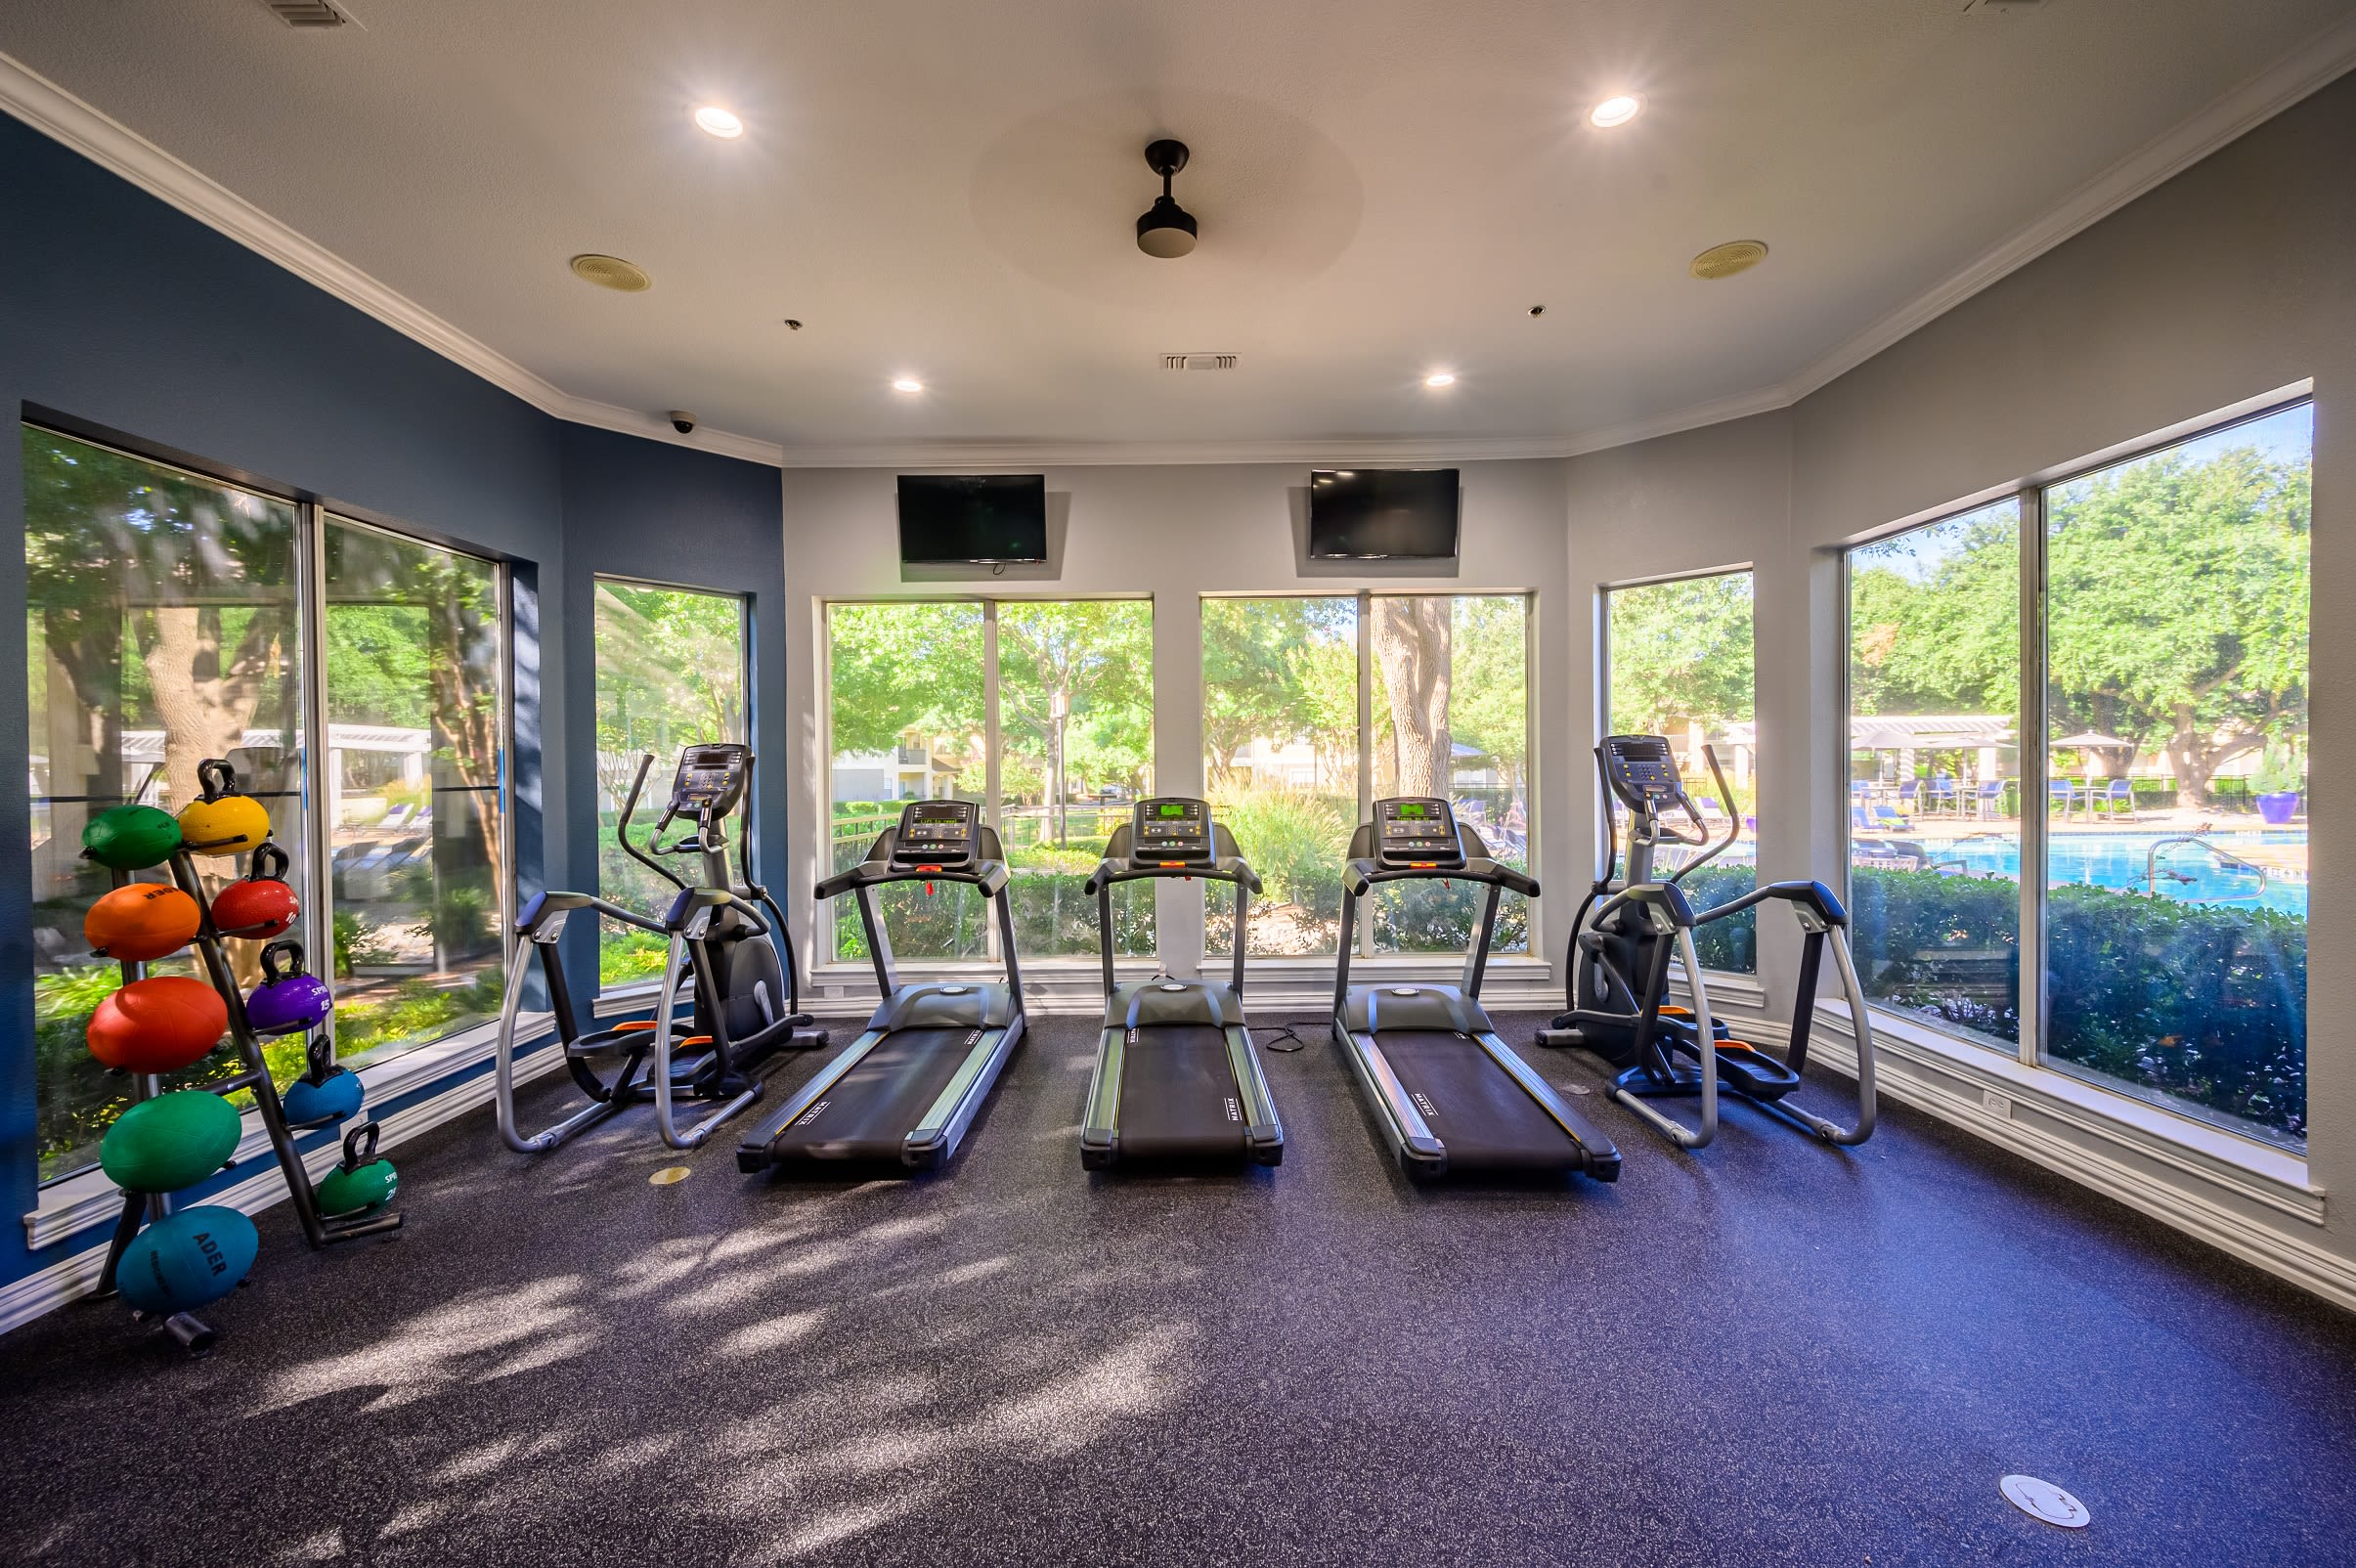 Enjoy the fitness center at 23Hundred @ Ridgeview in Plano, Texas